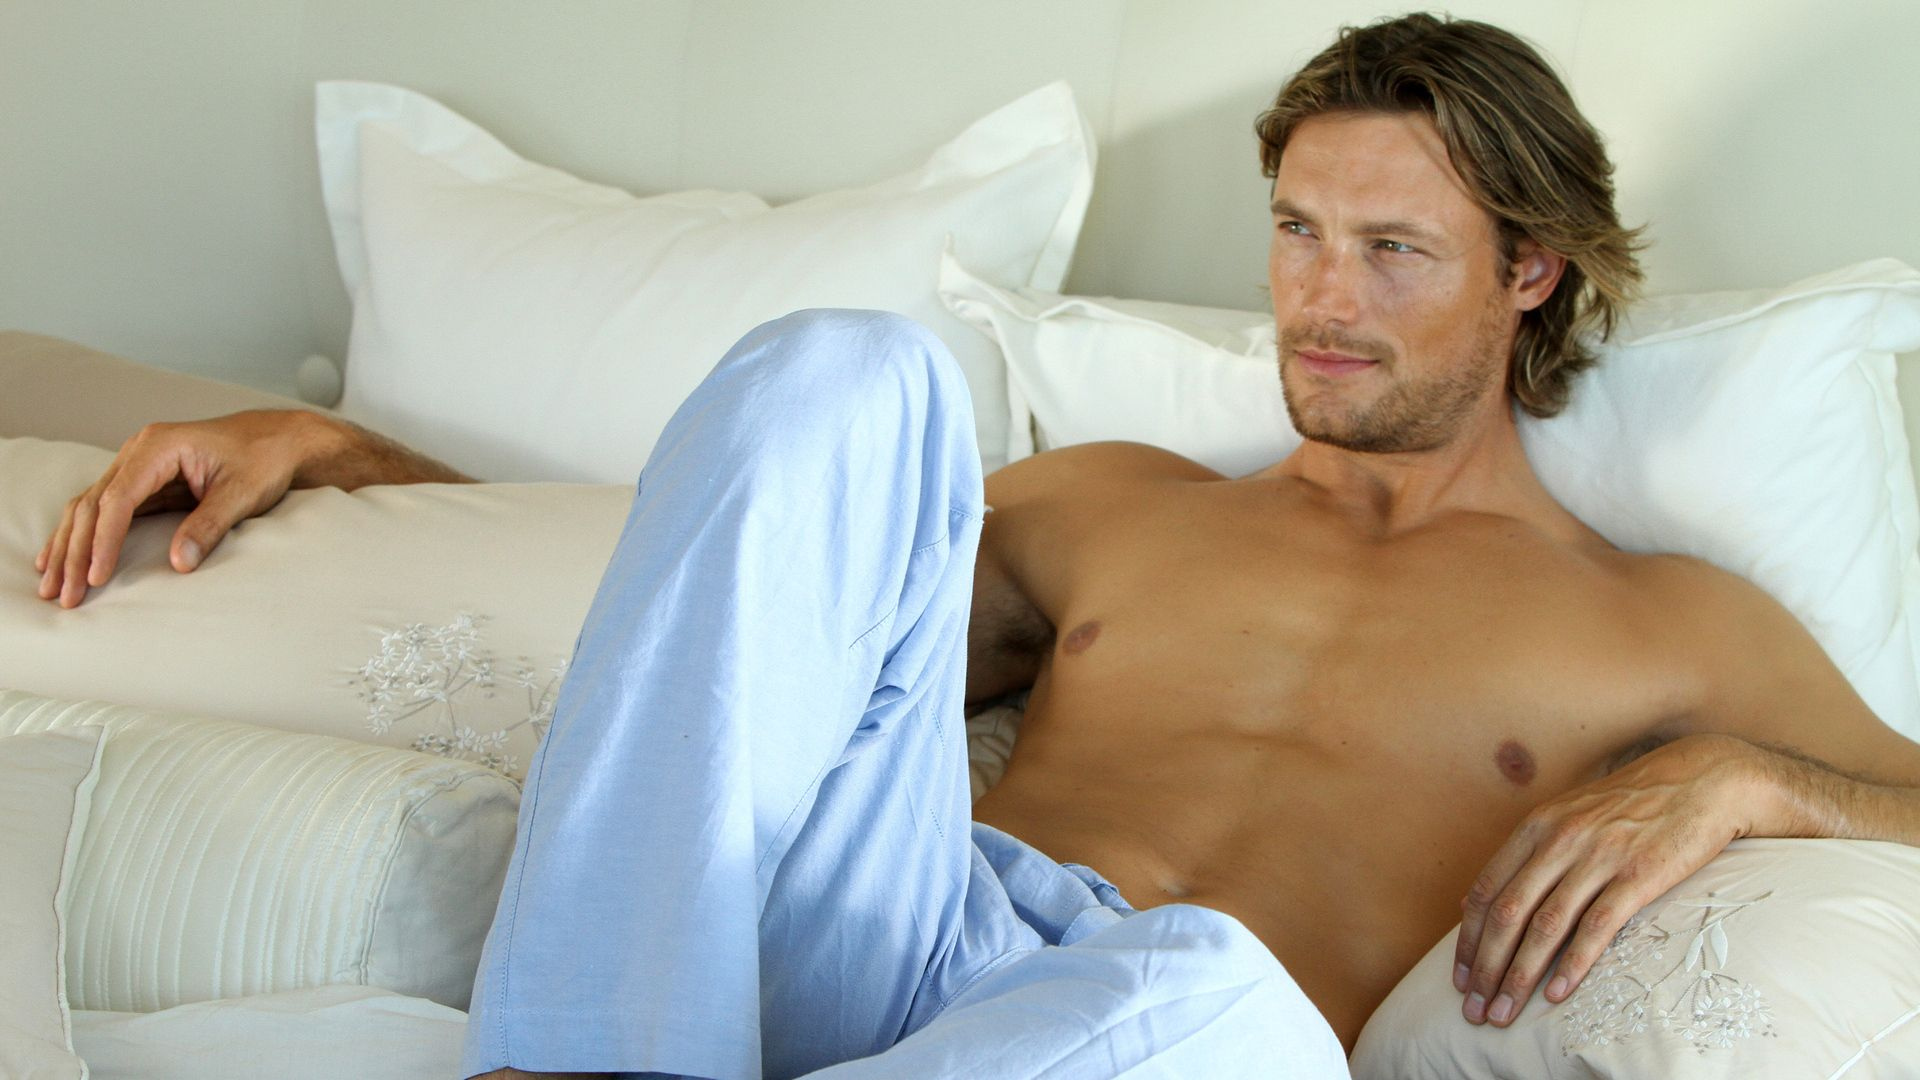 Gabriel aubry wallpaper hd wallpaper they make me swoon pinterest gabriel aubry wallpaper hd wallpaper voltagebd Choice Image